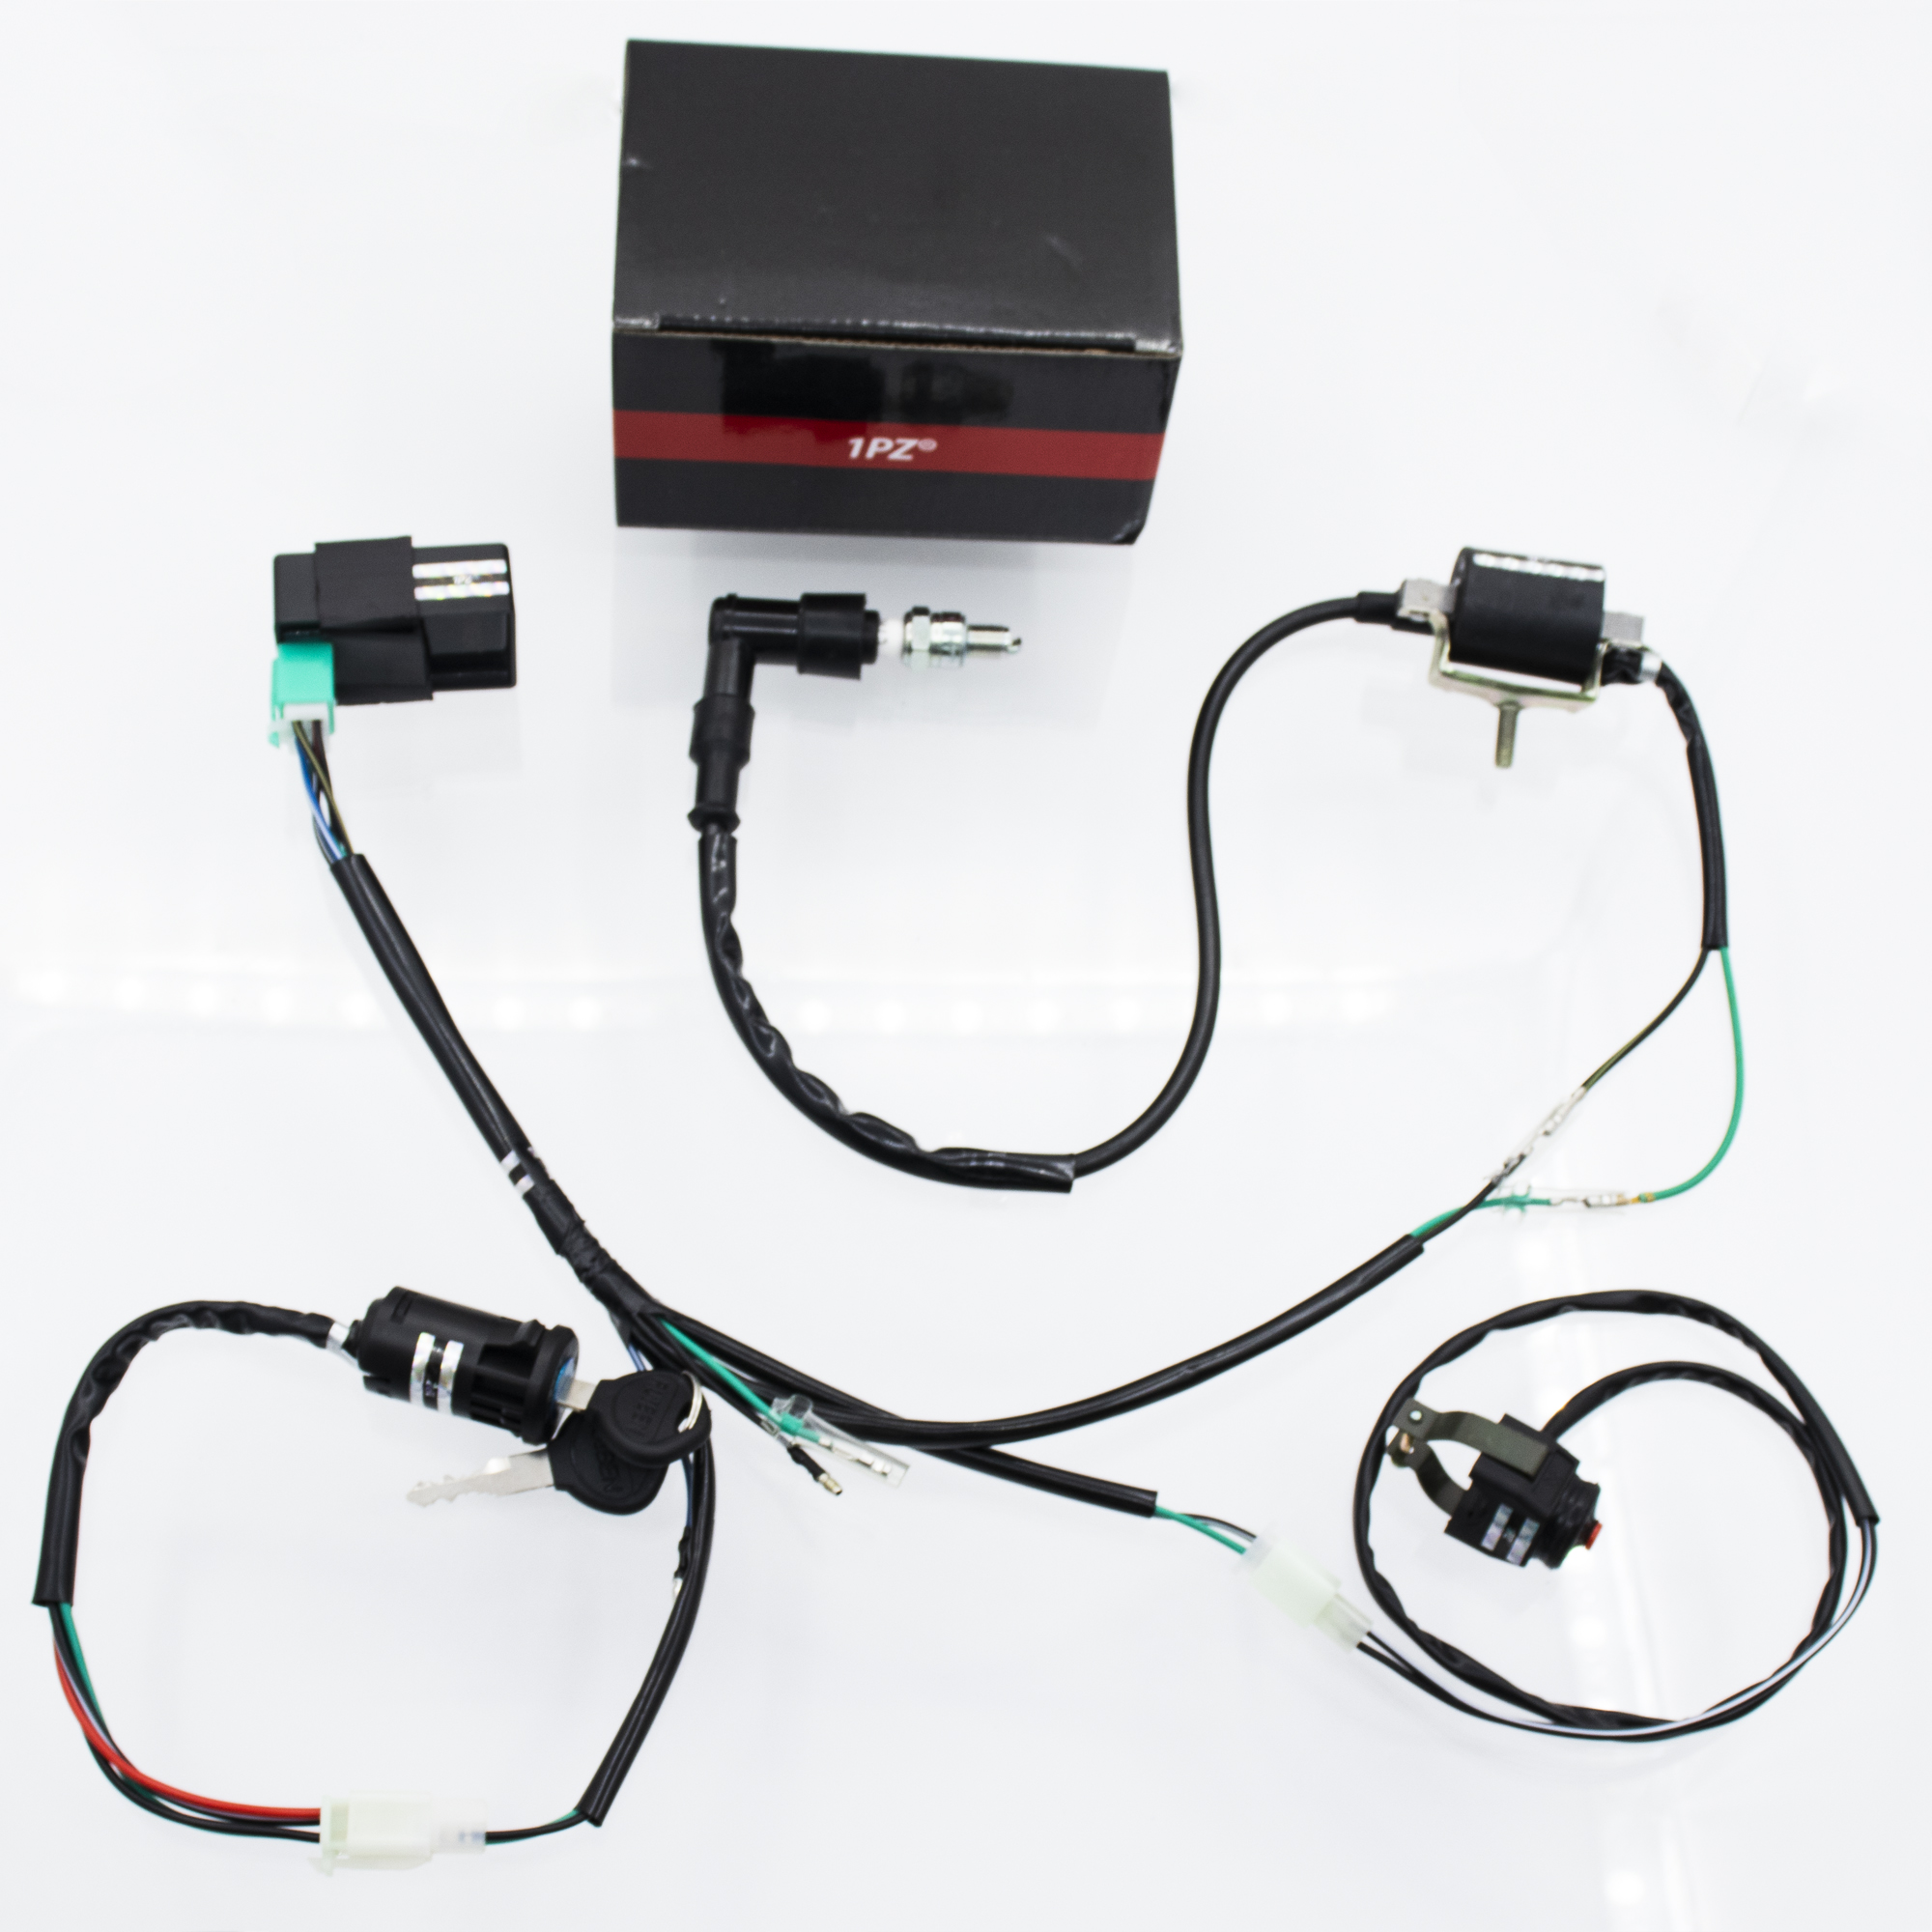 Awesome 1Pz 1Pz Tg1 S02 Wire Harness Wiring Loom Cdi Ignition Coil Spark Wiring Cloud Eachirenstrafr09Org